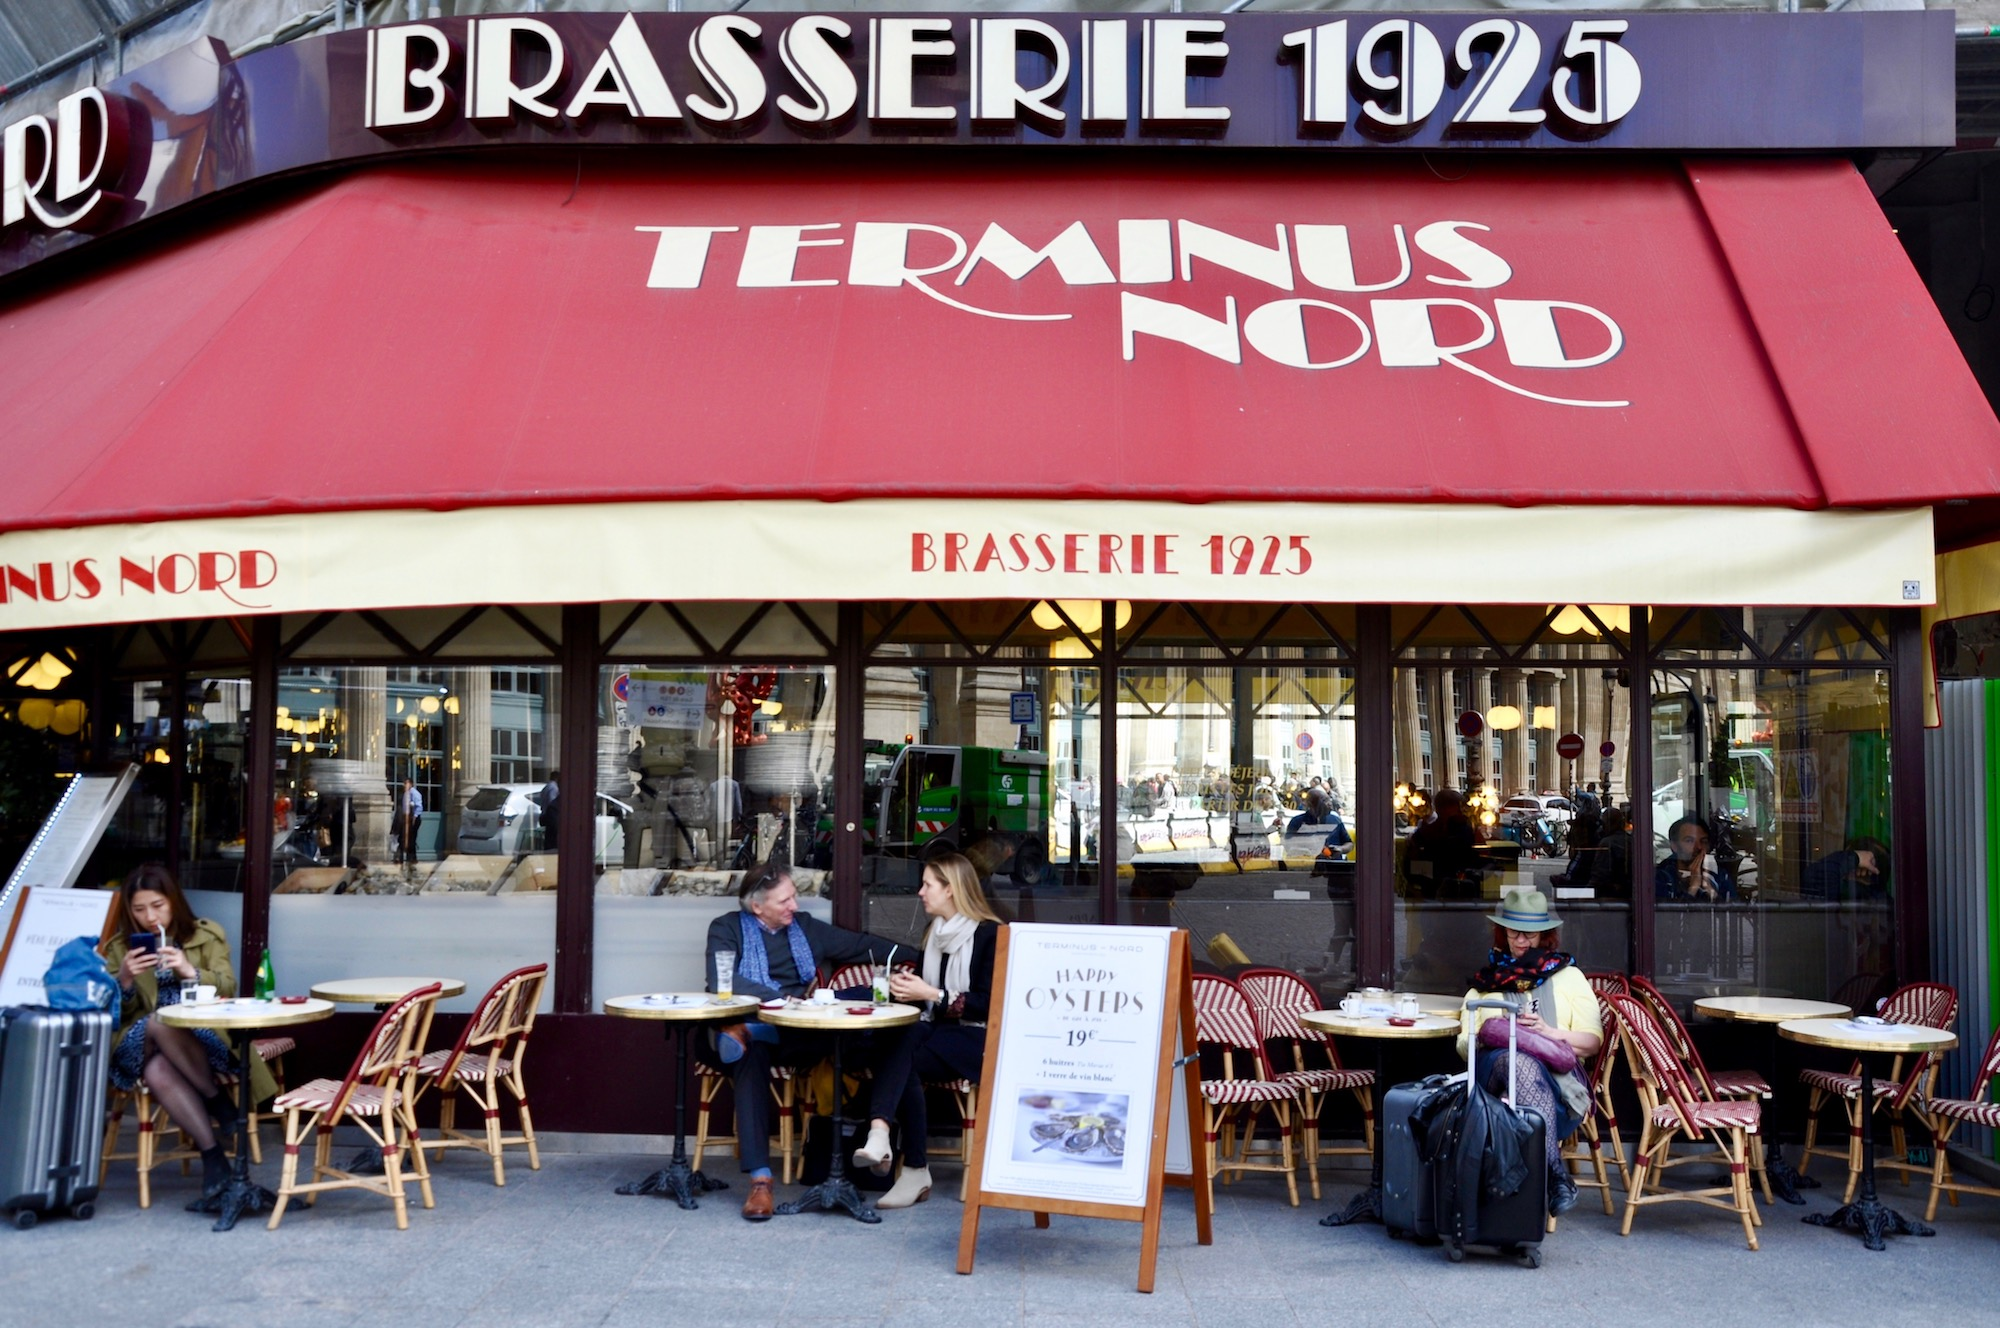 The Terminus Nord brasserie in Paris for classic French food across the road from Gare du Nord has an art deco feel.